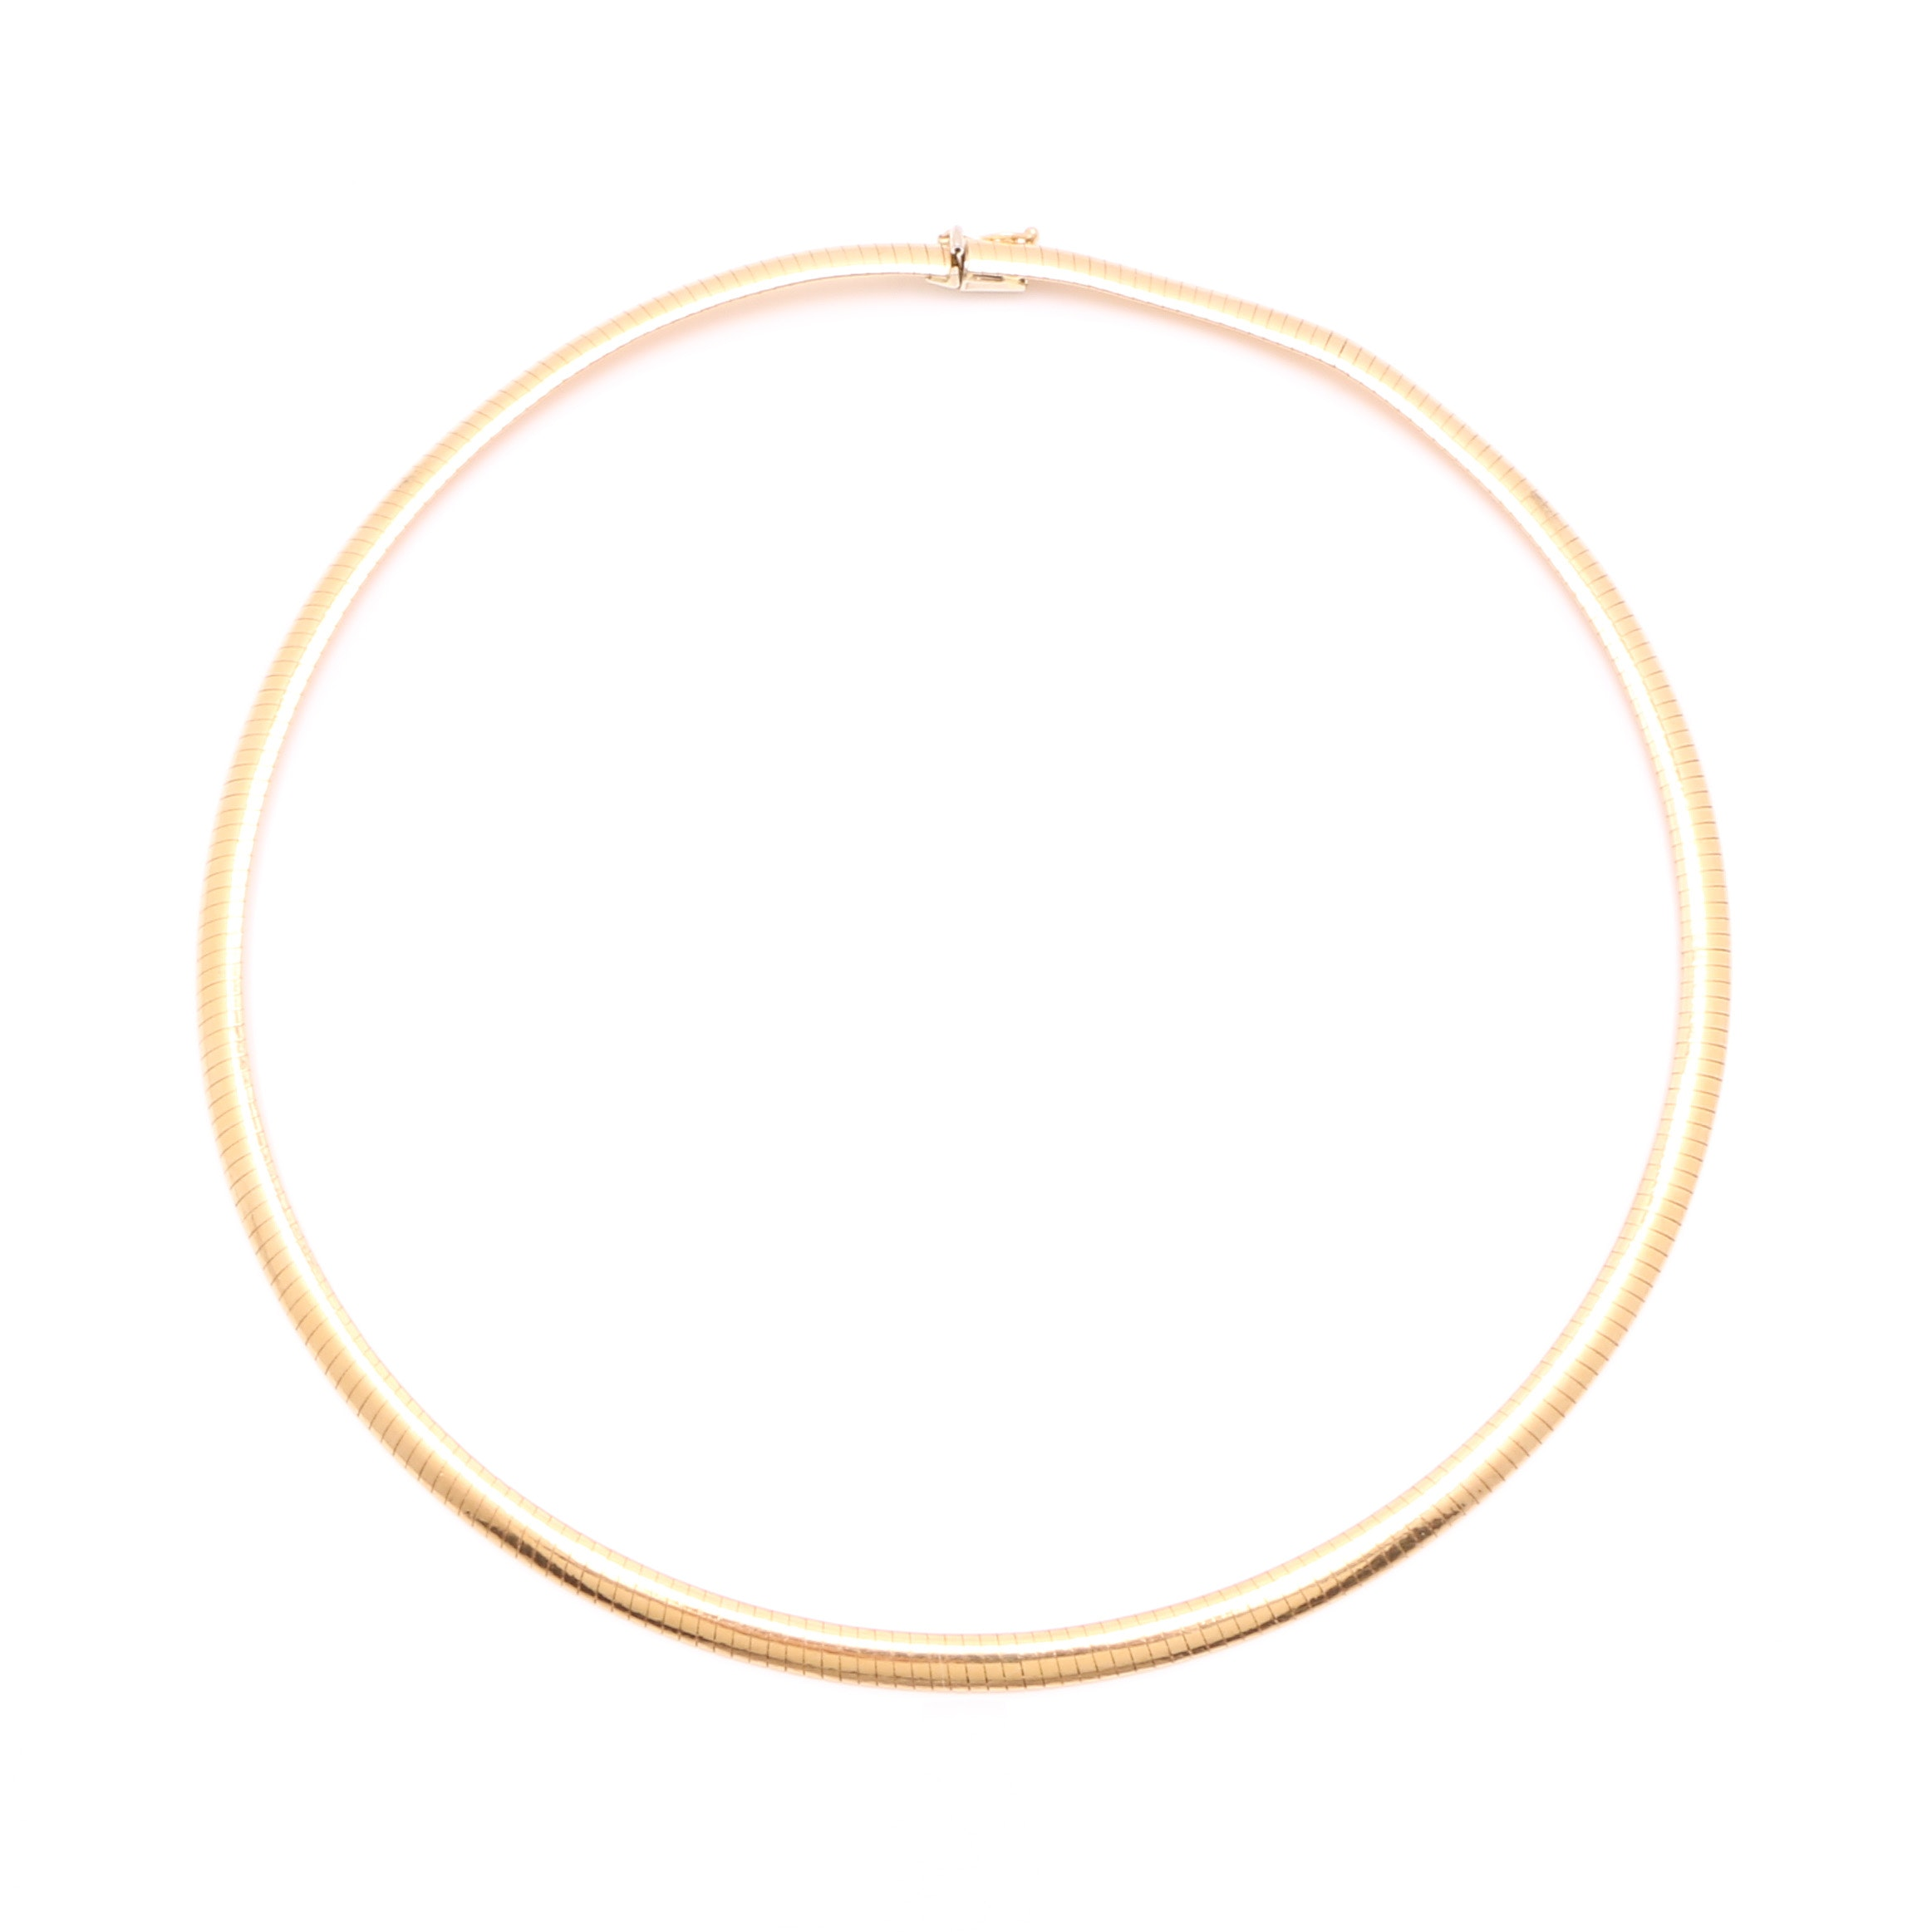 14K Yellow Gold Omega Chain Necklace